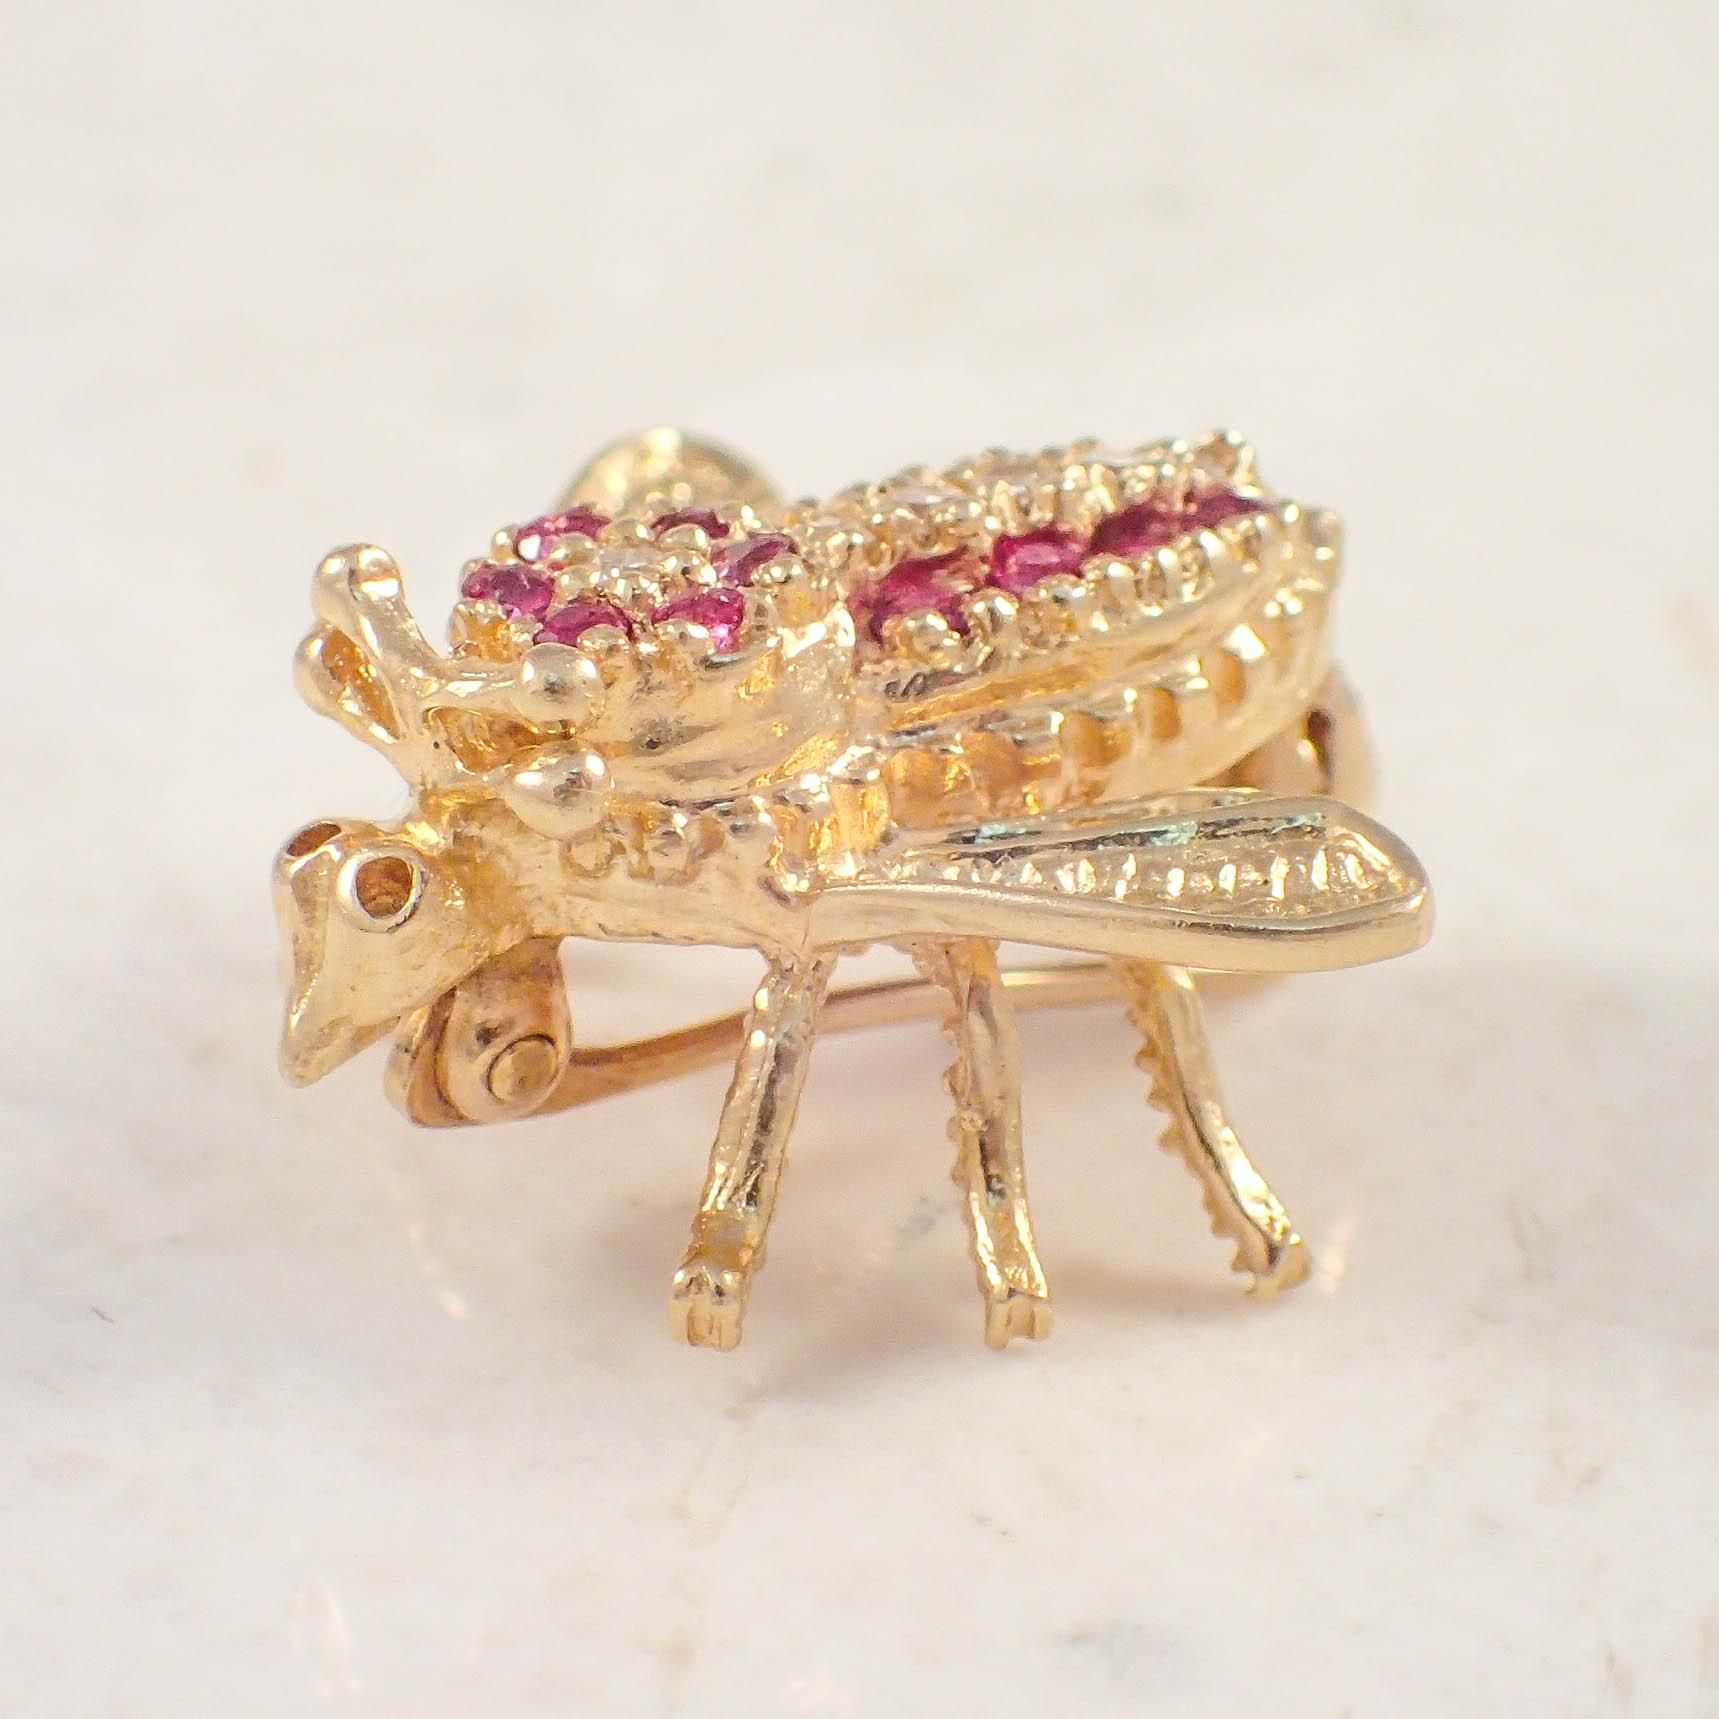 14K Yellow gold ruby and diamond bee brooch. The bee brooch is set with a row of 6 small round diamonds weighing approximately .10 carat total,